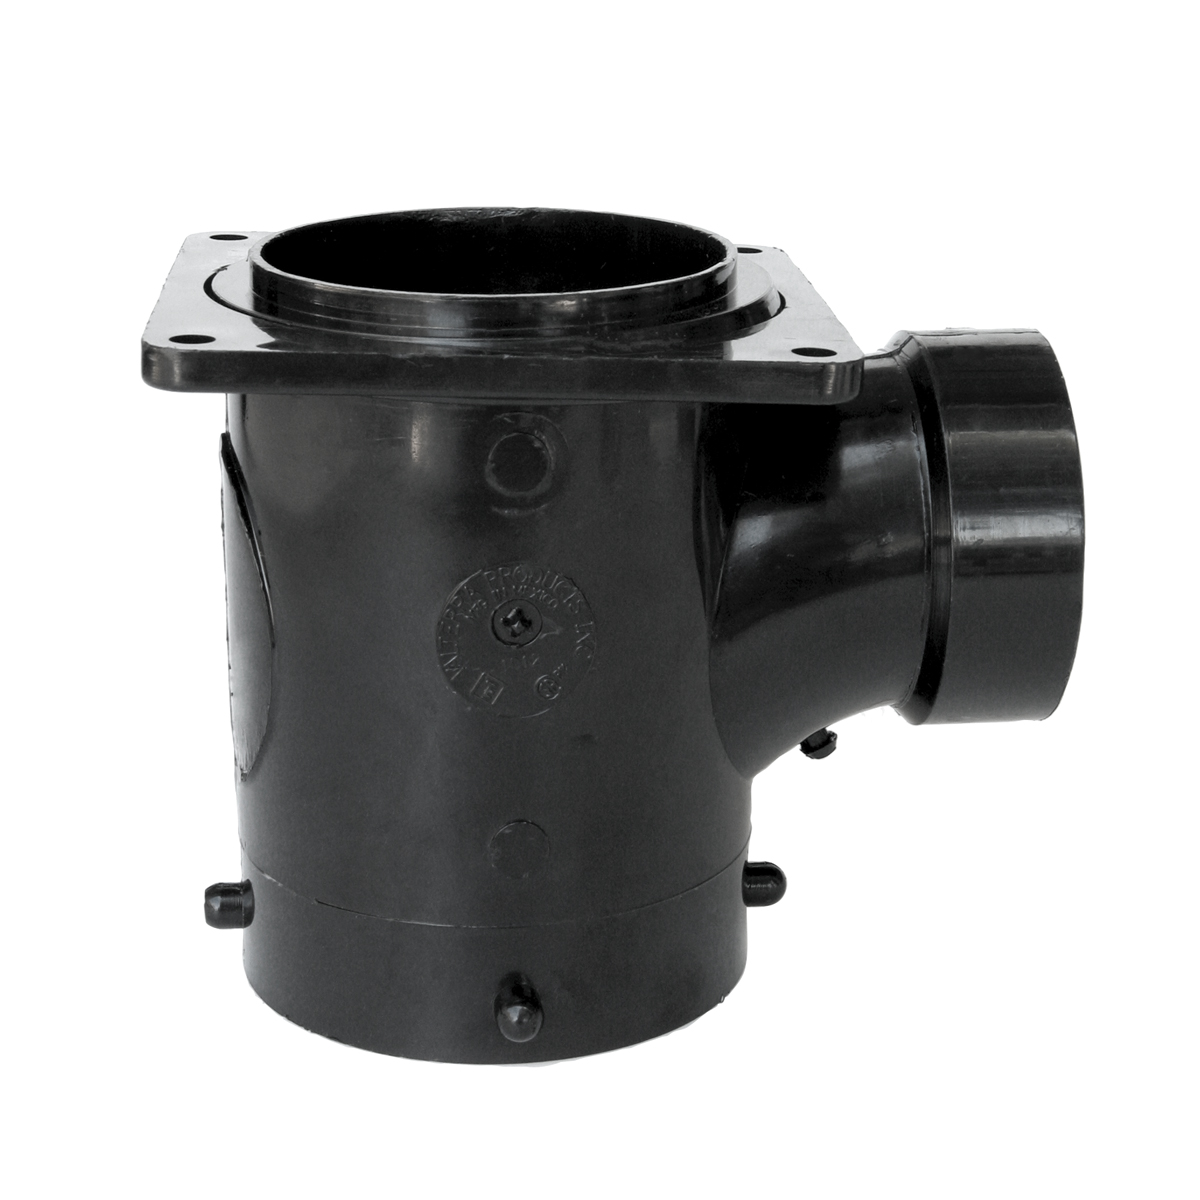 T1012 Valterra Sewer Waste Valve Fitting San Tee Reducing With 3 Inch